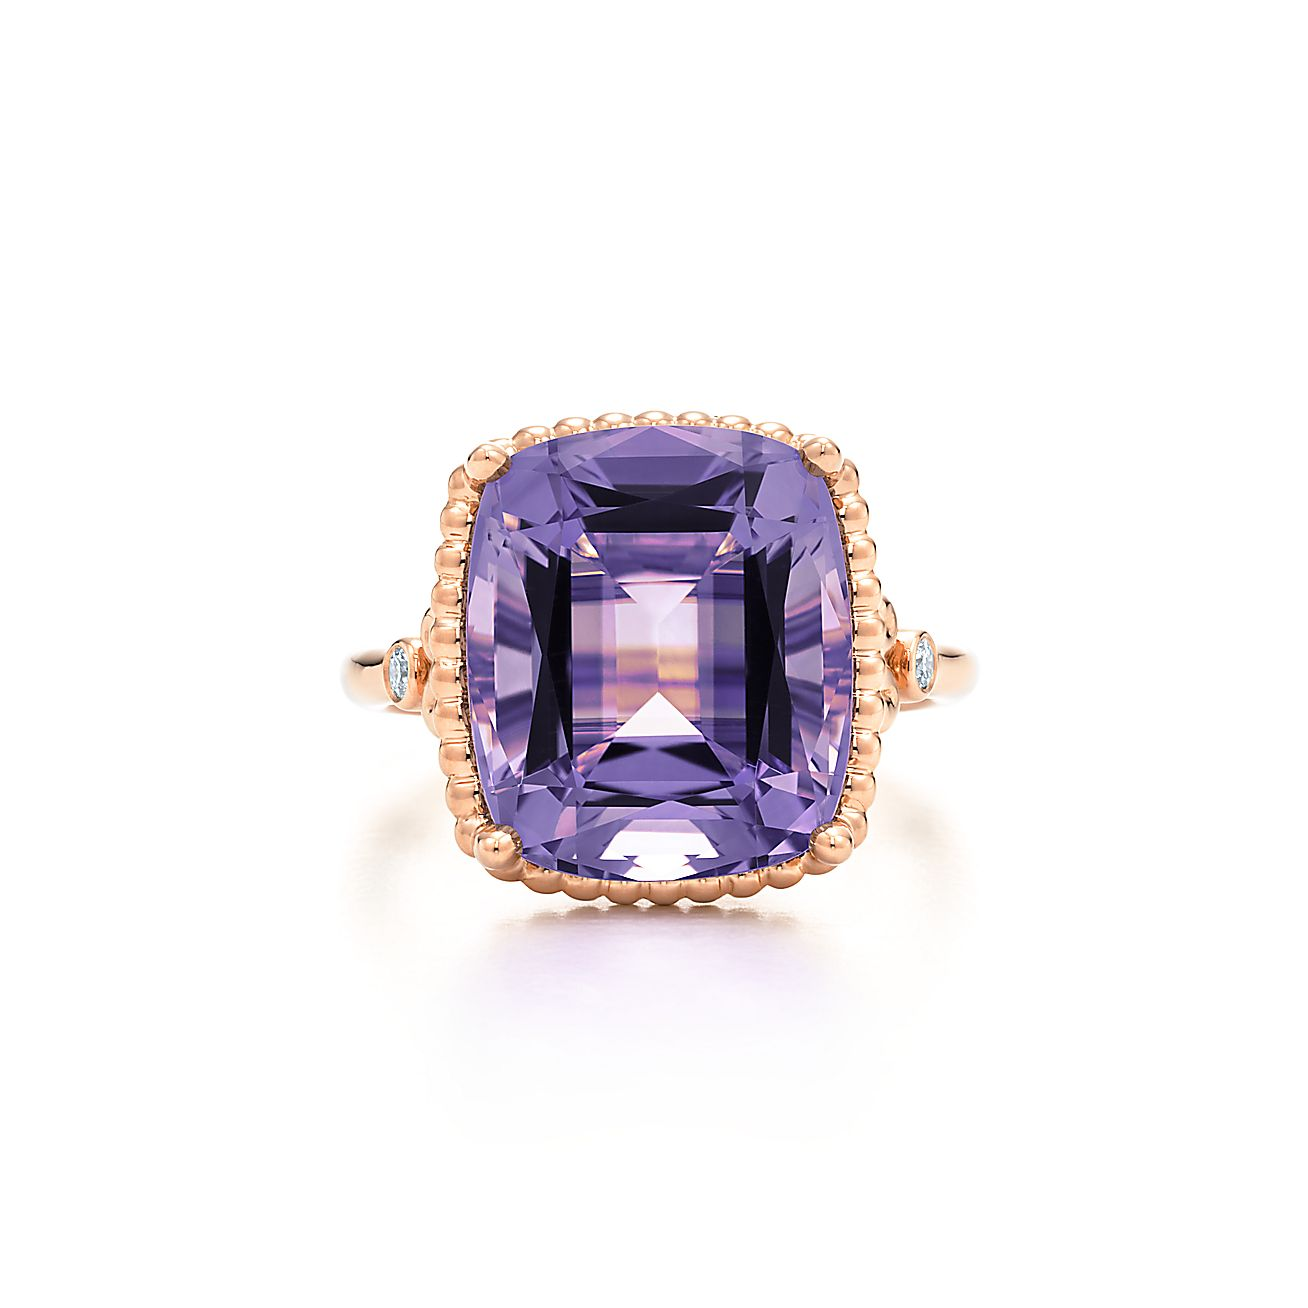 Tiffany Sparklers Lavender Amethyst Ring In 18k Rose Gold With Diamonds   Tiffany & Co